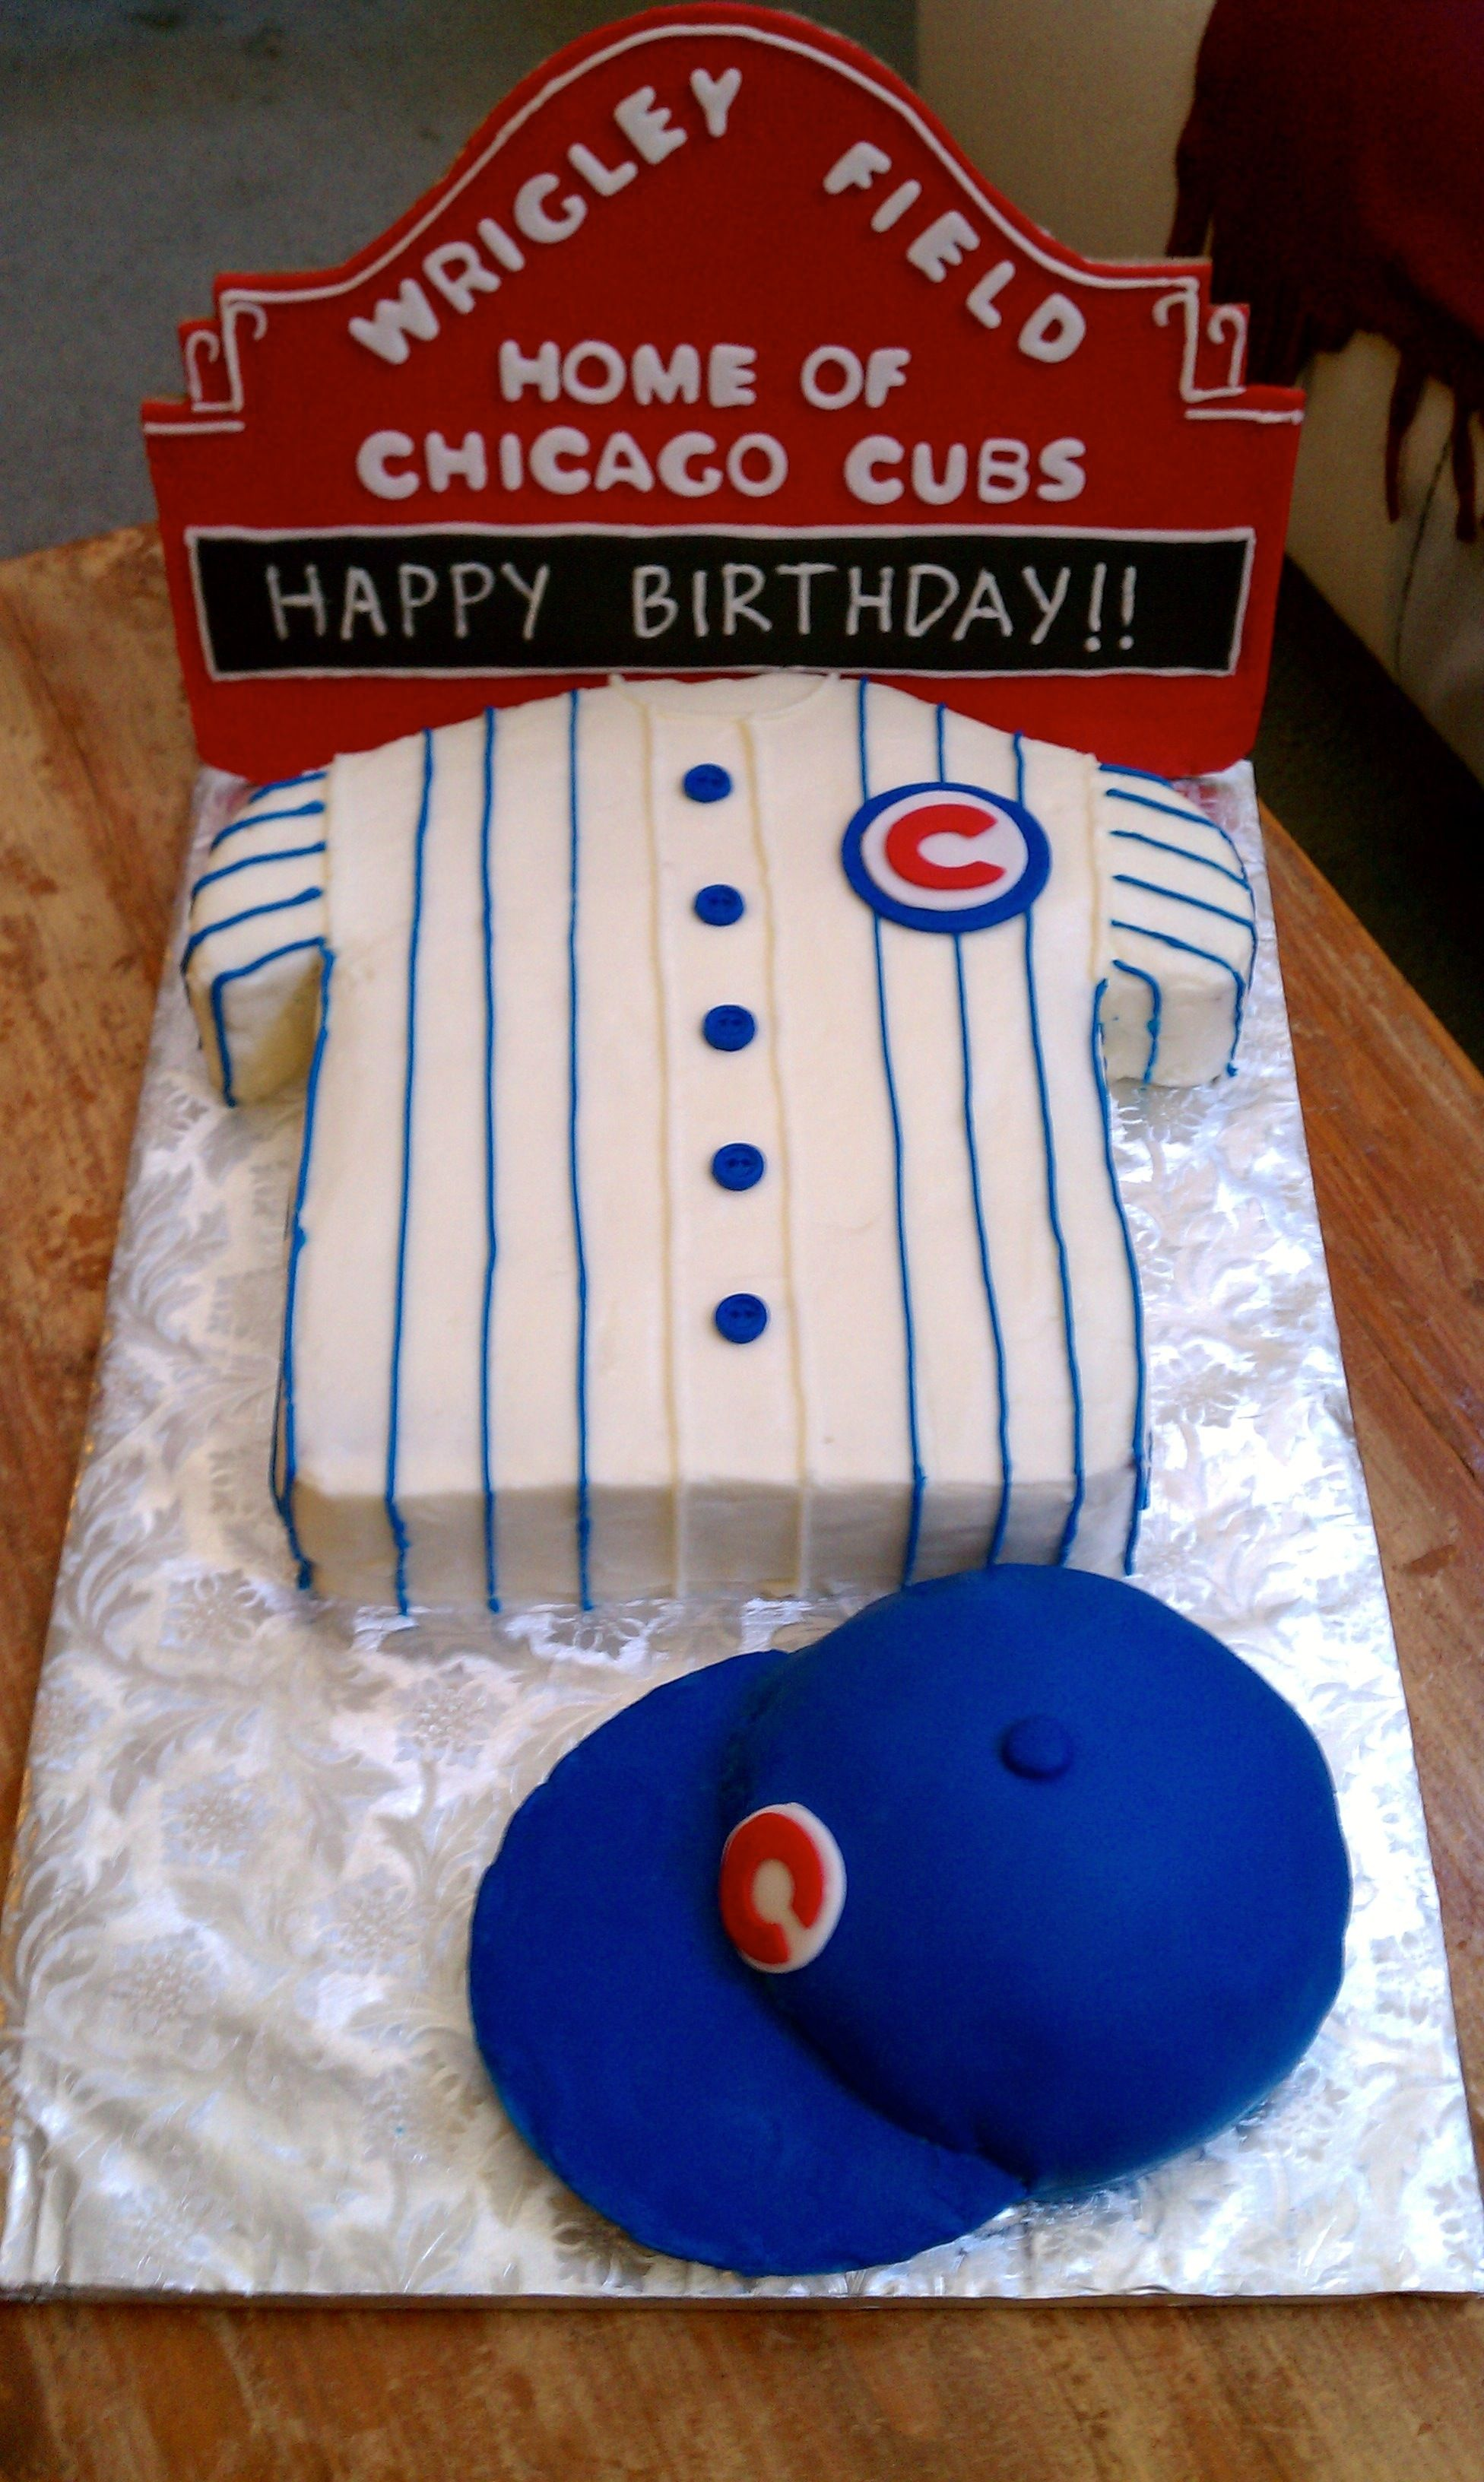 Chicago Cubs Wrigley Field Birthday Cake With Cubs